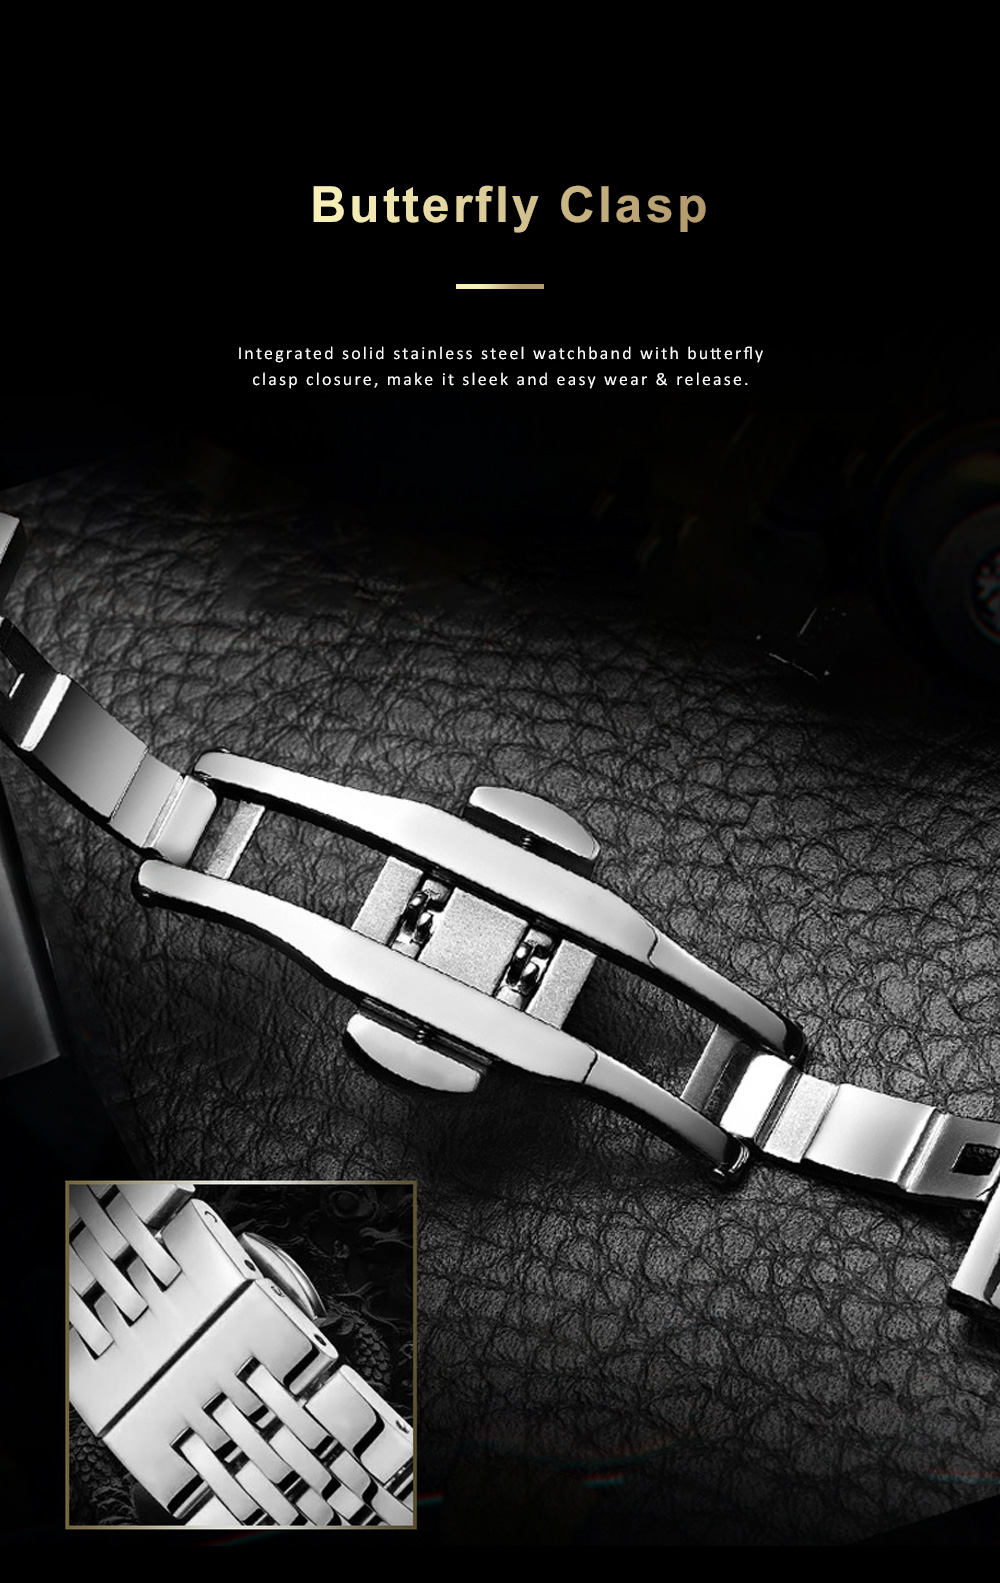 Automatic Mechanical Men's Watch for Business, Daily, Dating, Luxurious Fashion Businessman Watch with Waterproof 5